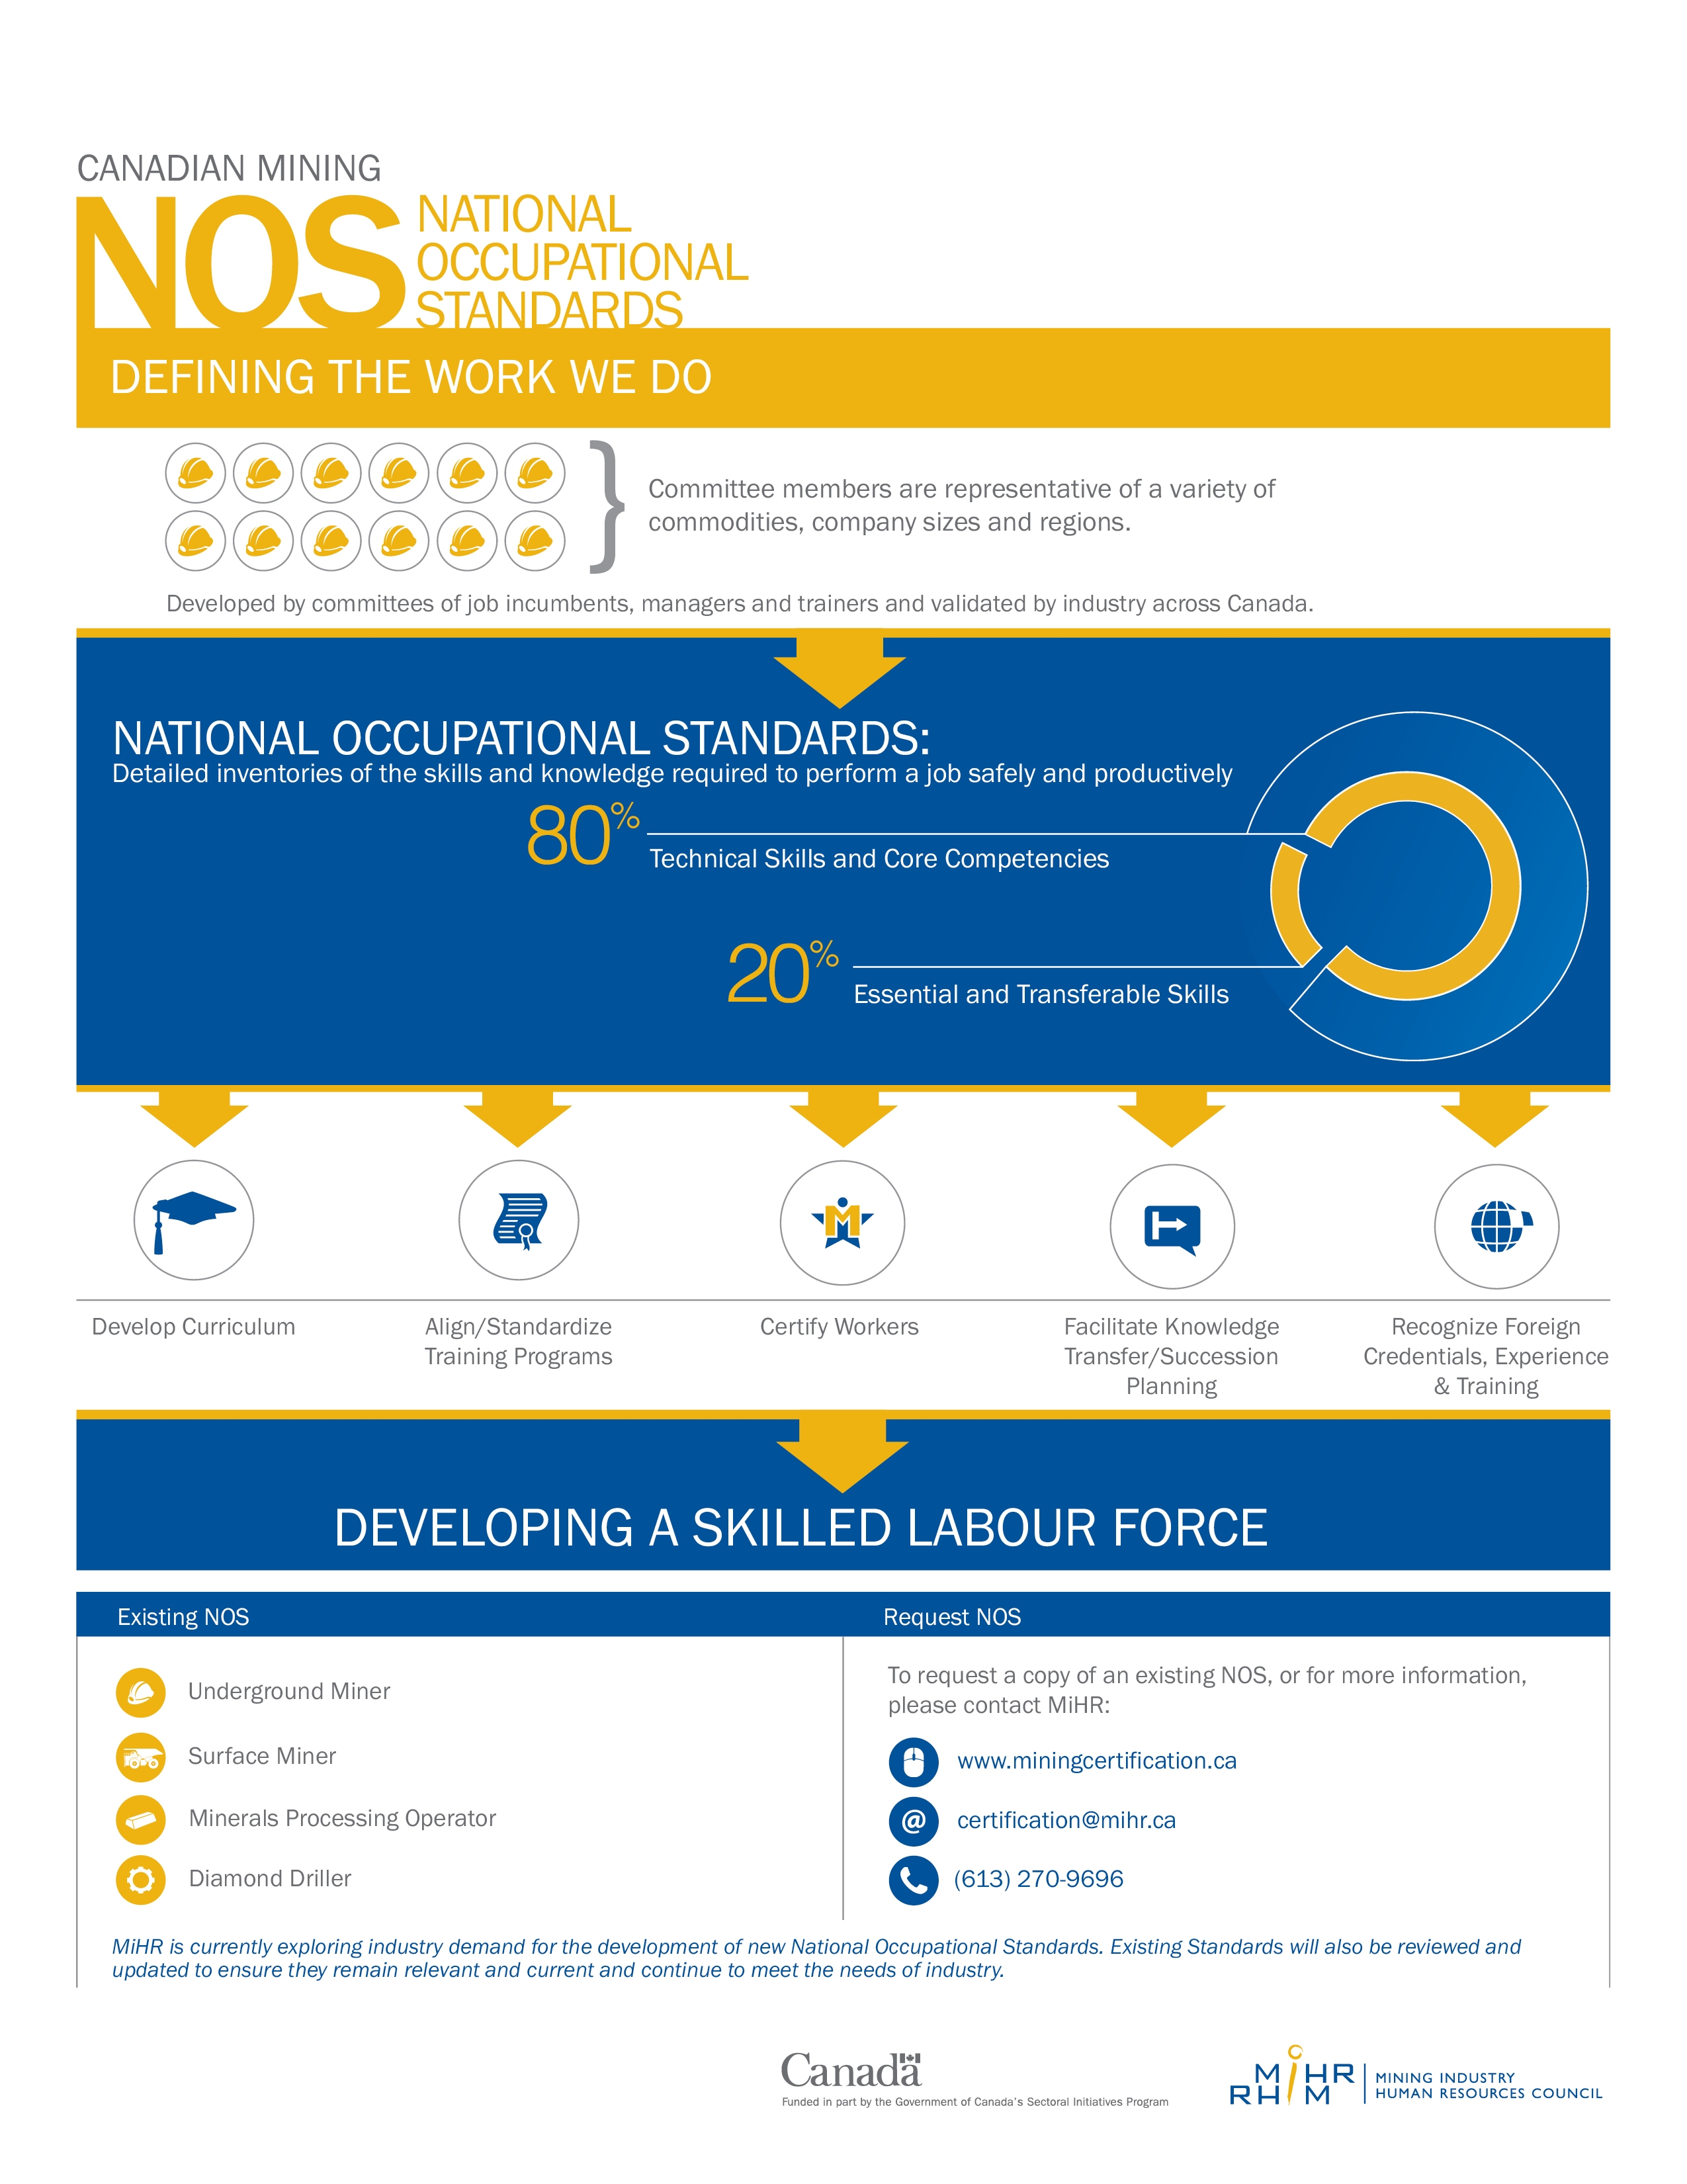 A graphic representation of how national occupational standards are developed and their various applications